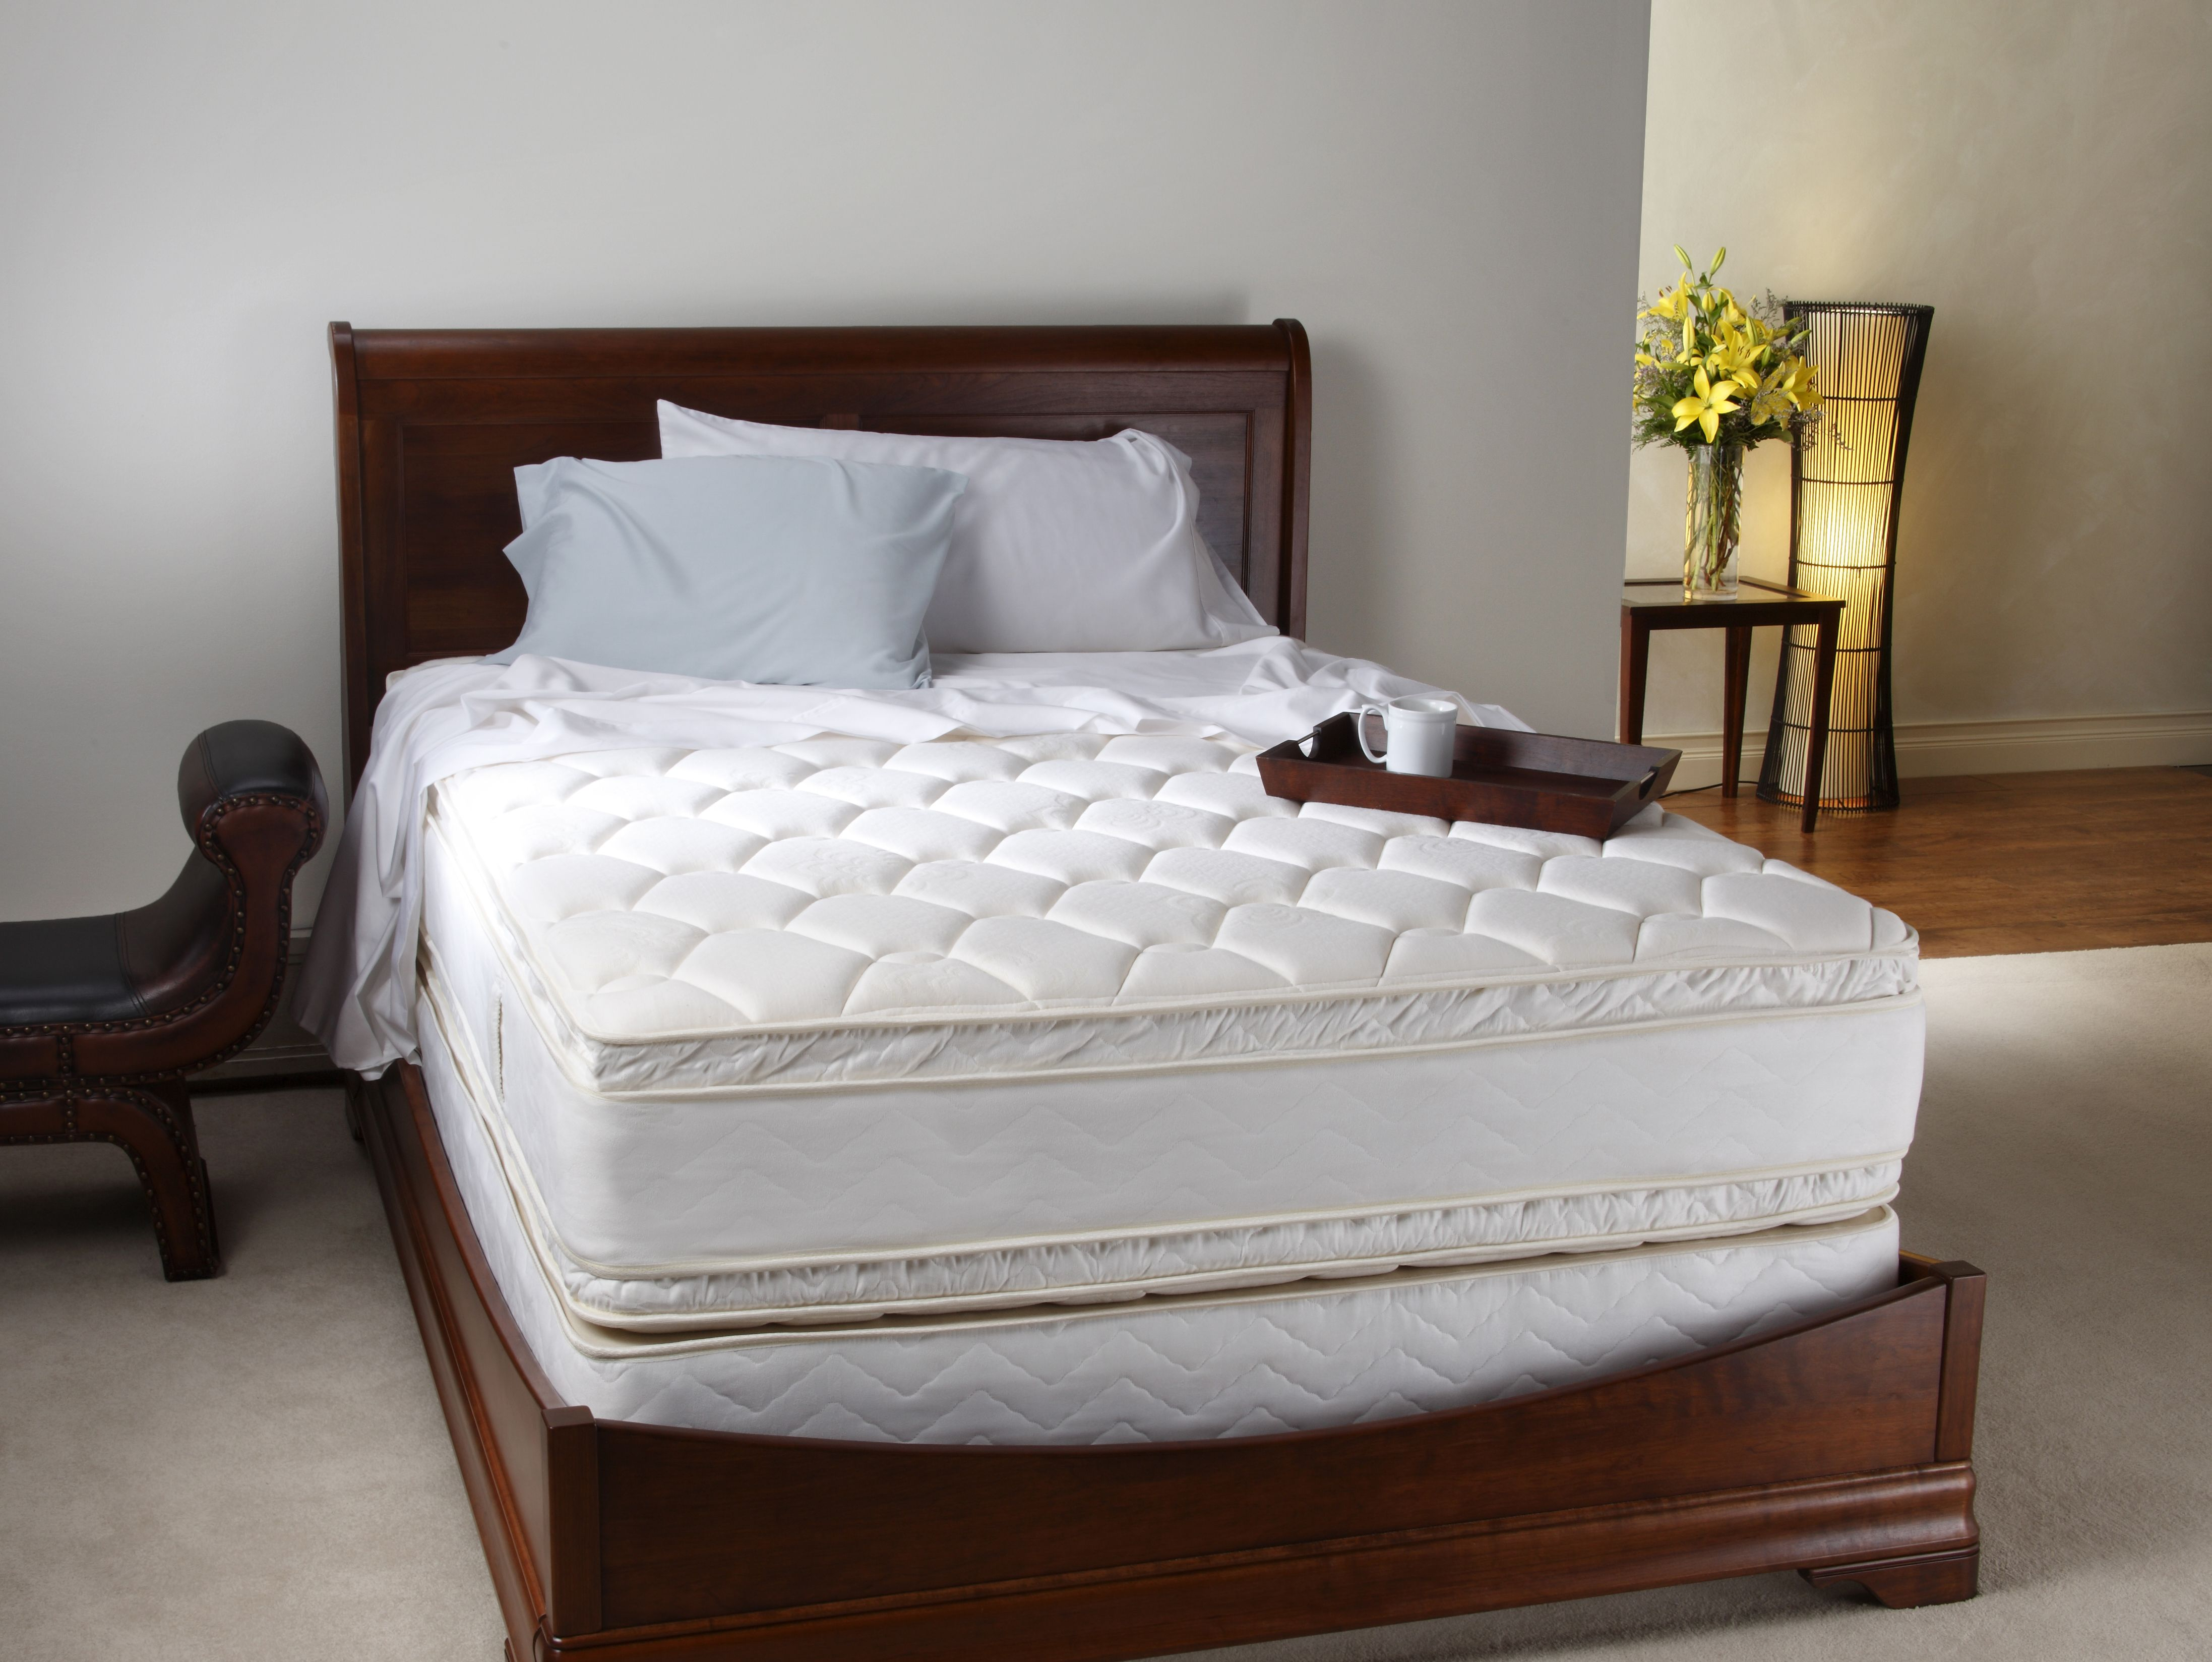 Renovating Your Home Maybe It S Time For A New Mattress Too Come